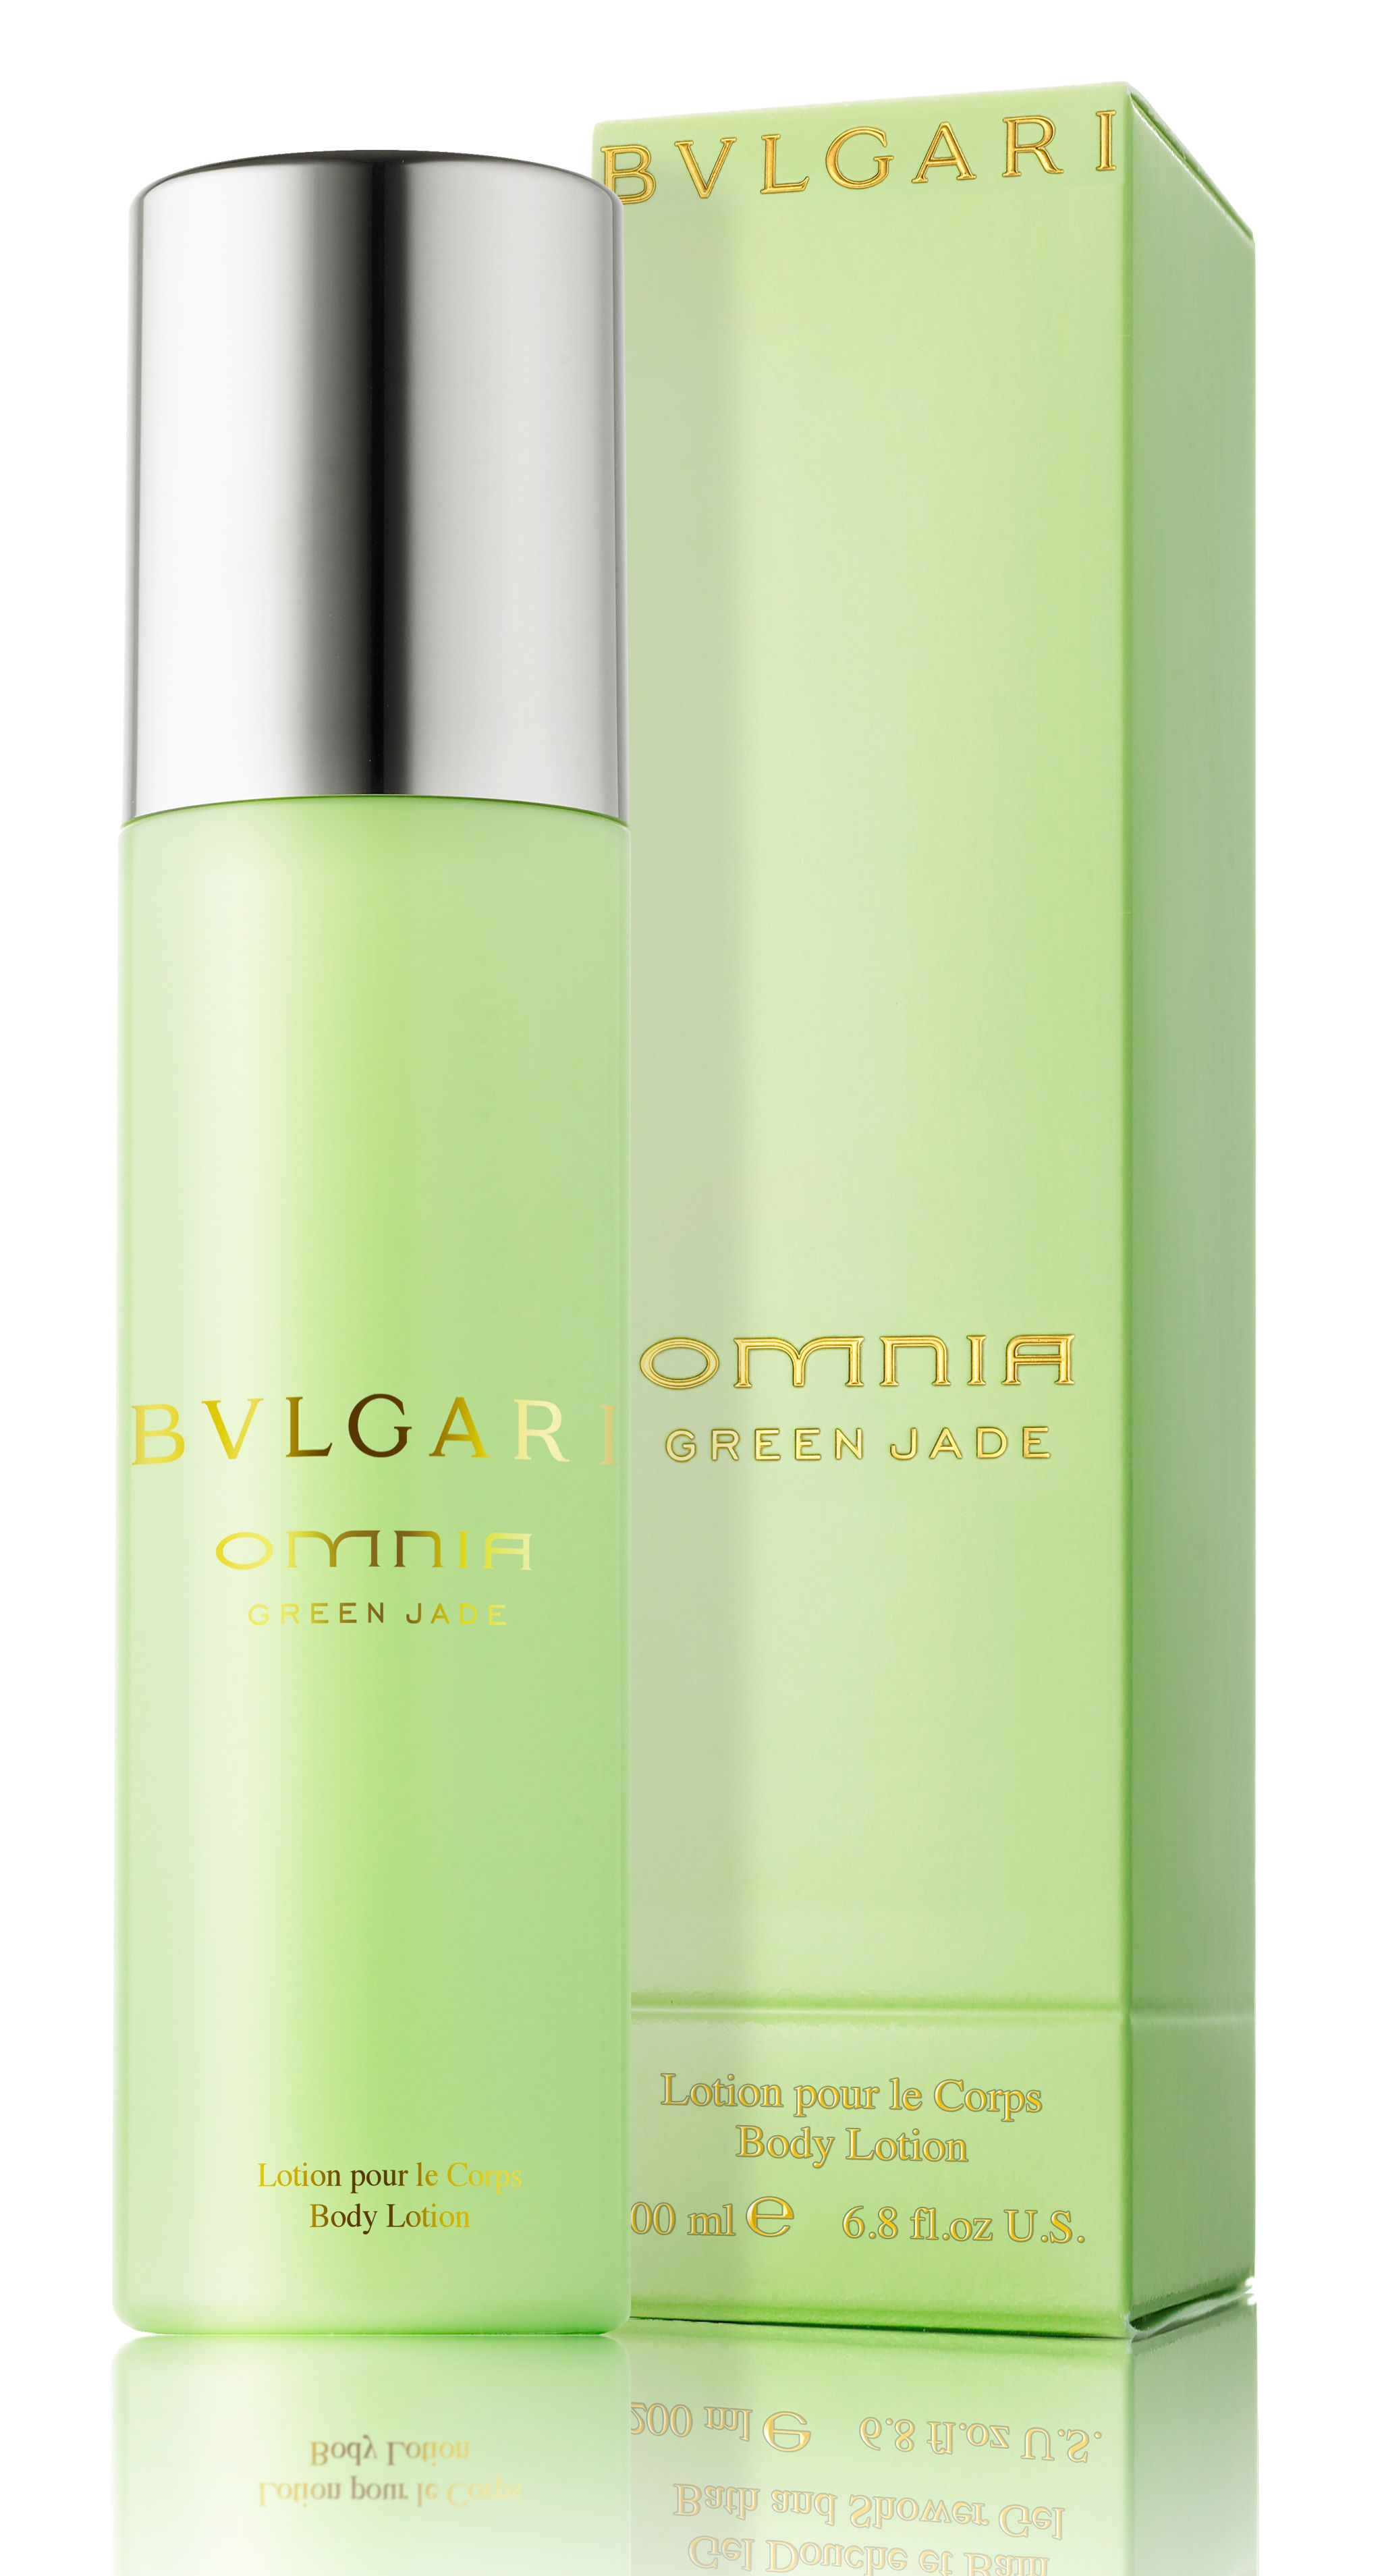 200ml Omnia Green Jade body lotion